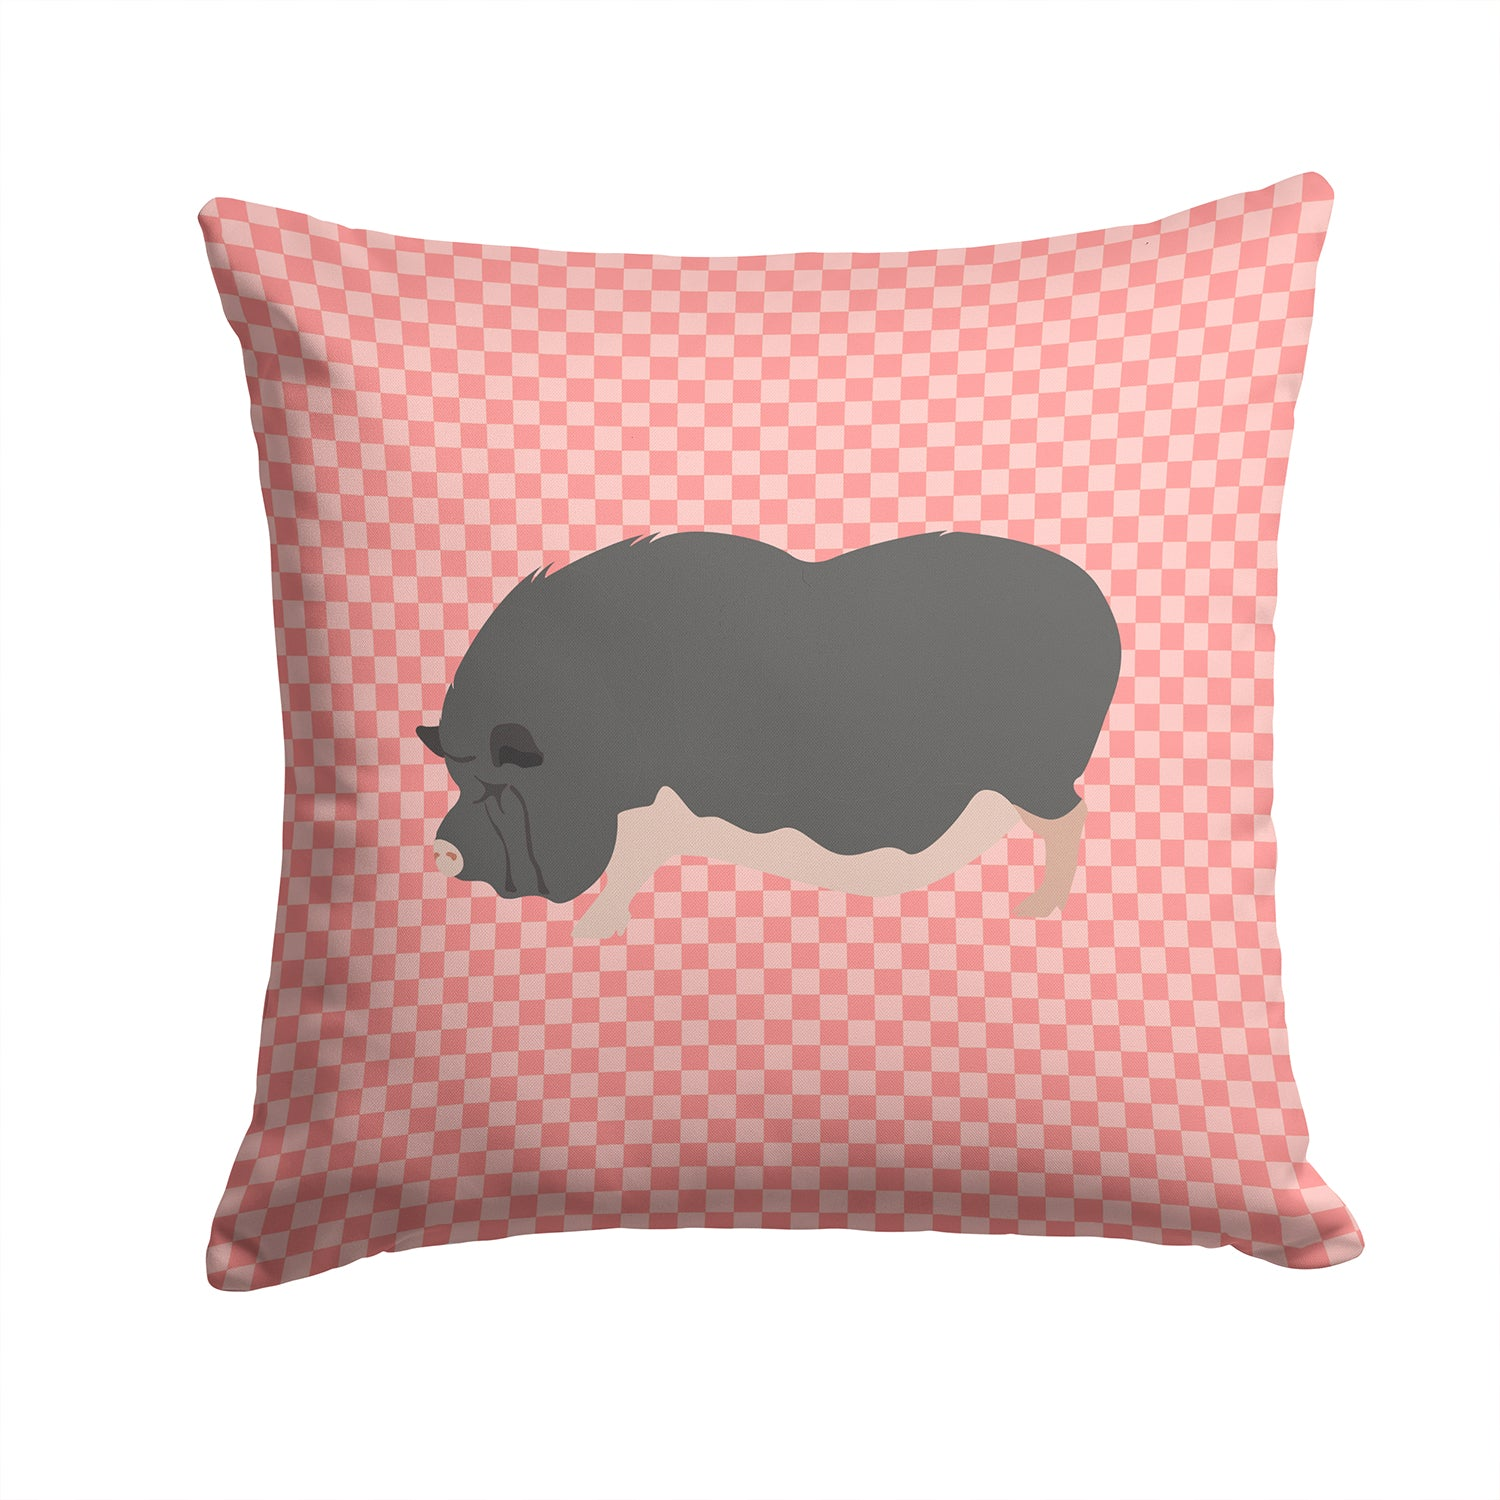 Vietnamese Pot-Bellied Pig Pink Check Fabric Decorative Pillow BB7941PW1414 by Caroline's Treasures